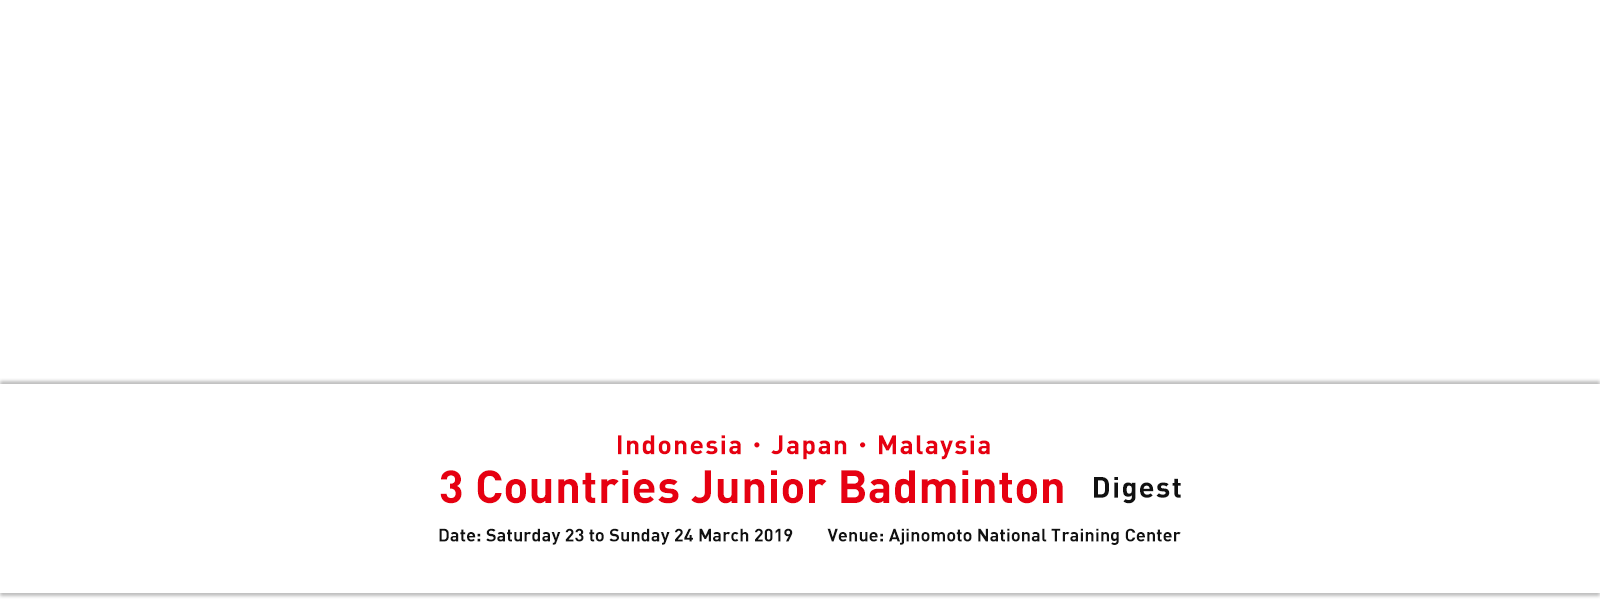 Indonesia・Japan・Malaysia 3 Countries Junior Badminton Digest Date: Saturday 23 to Sunday 24 March 2019 Venue: Ajinomoto National Training Center